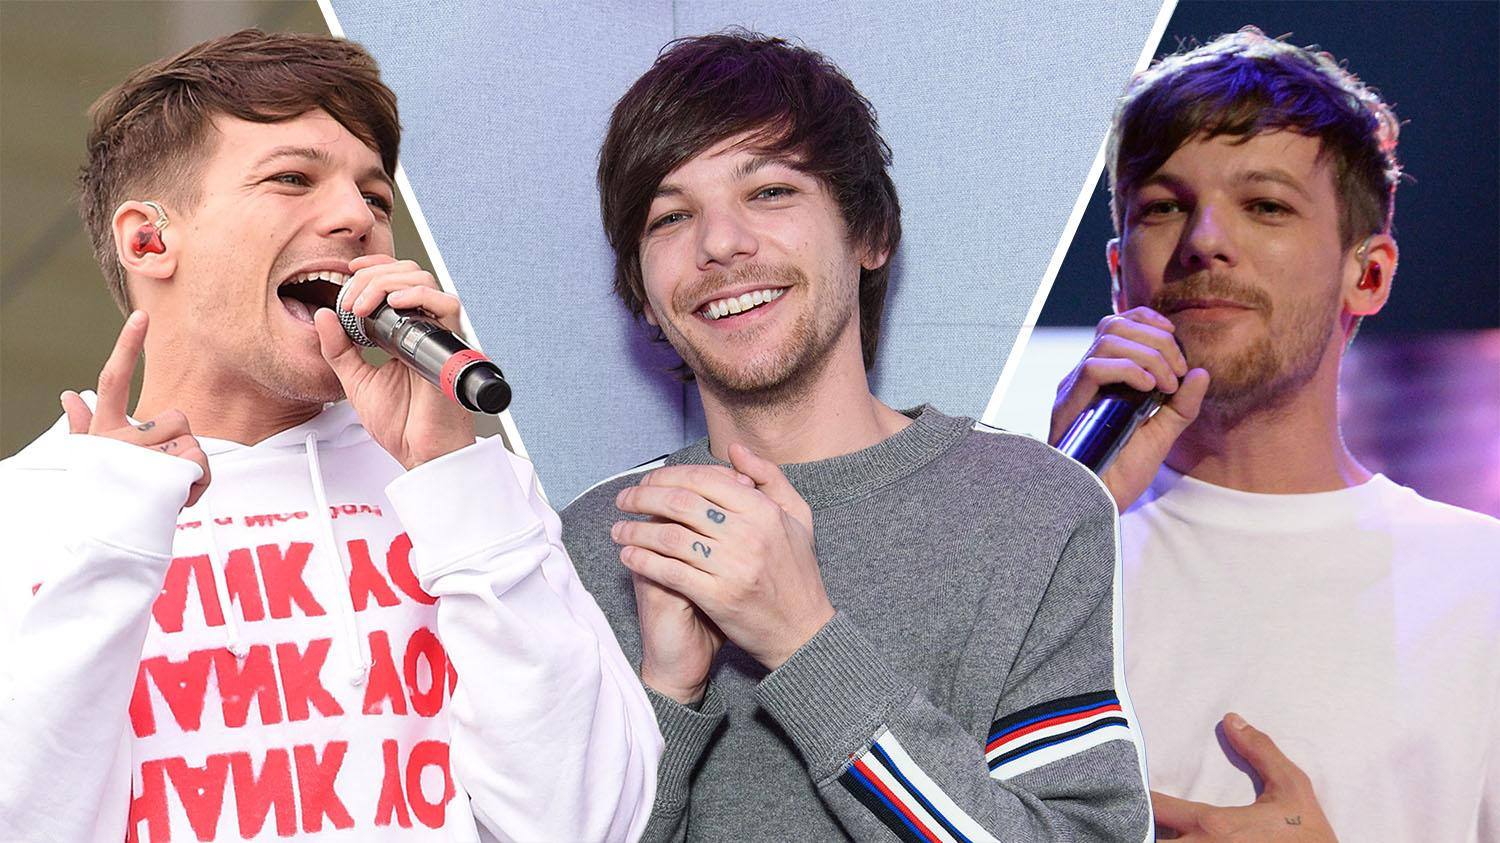 Louis Tomlinson: Everything you need to know about the